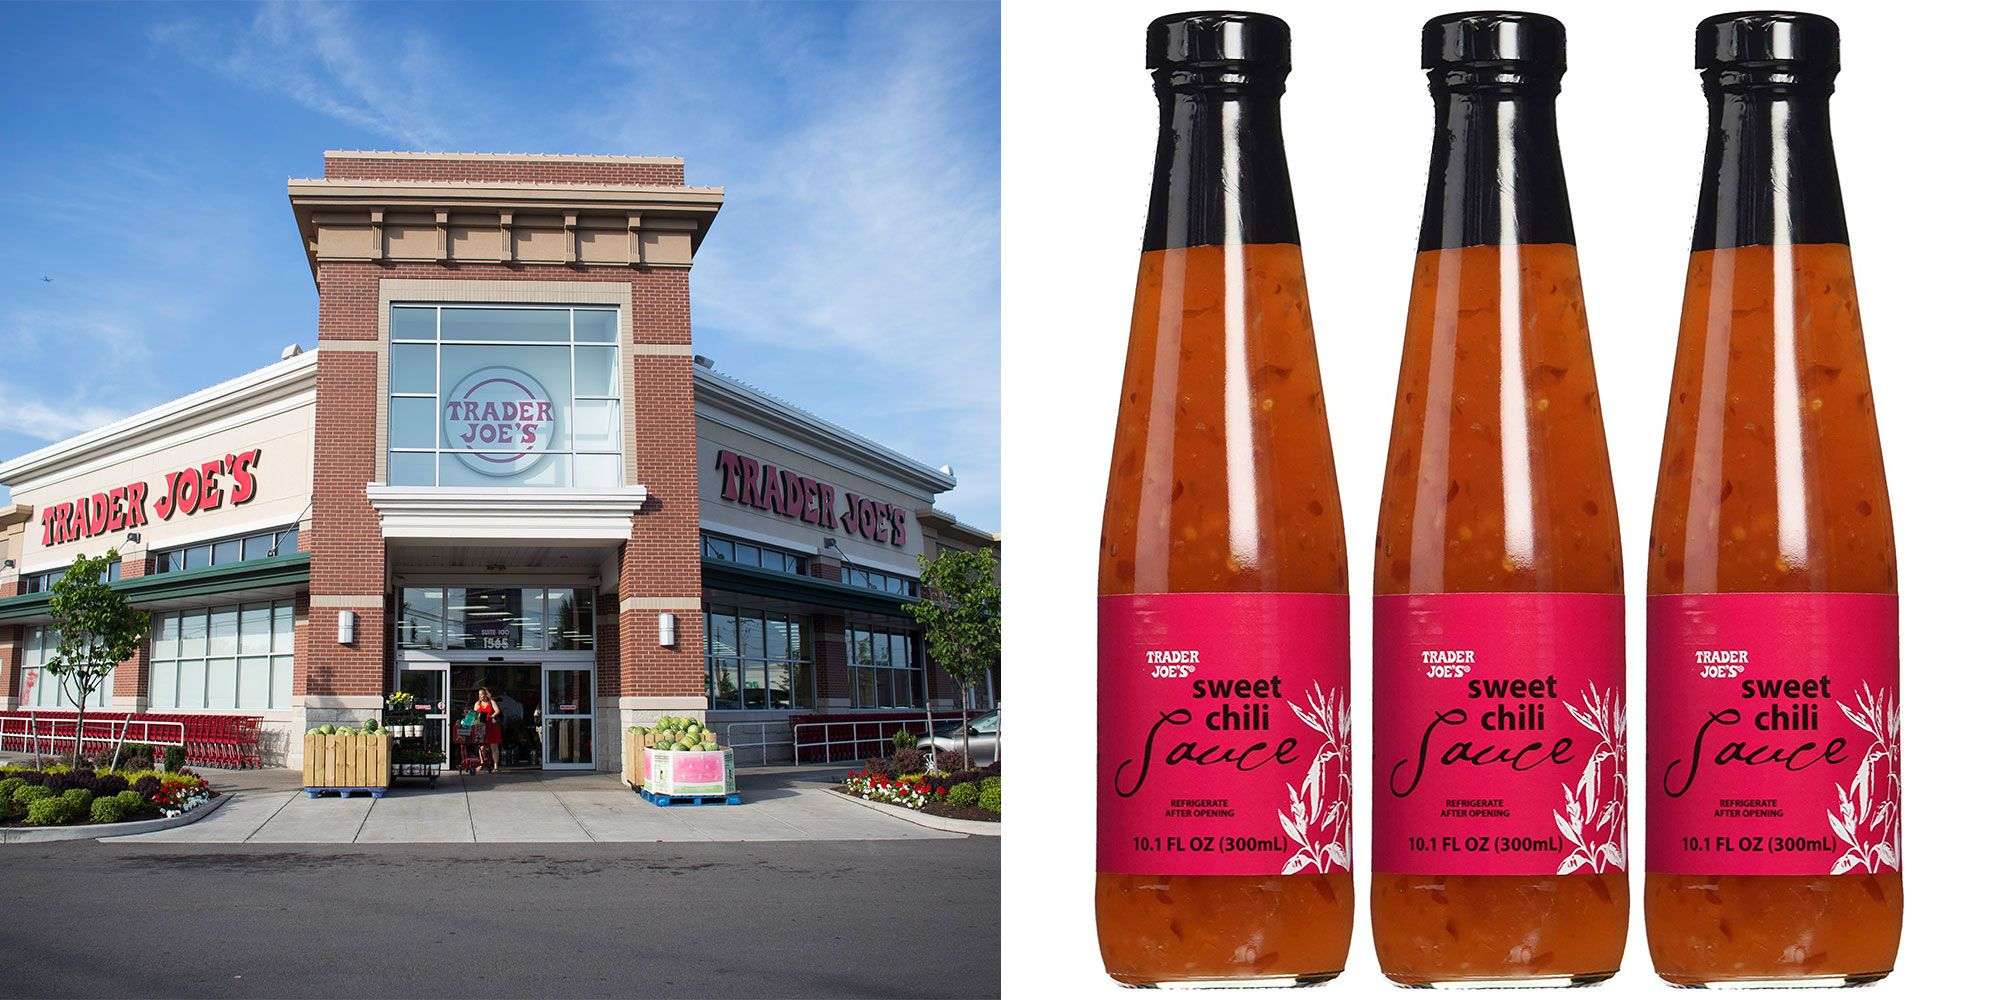 The Most Popular Trader Joe's Item In Every State